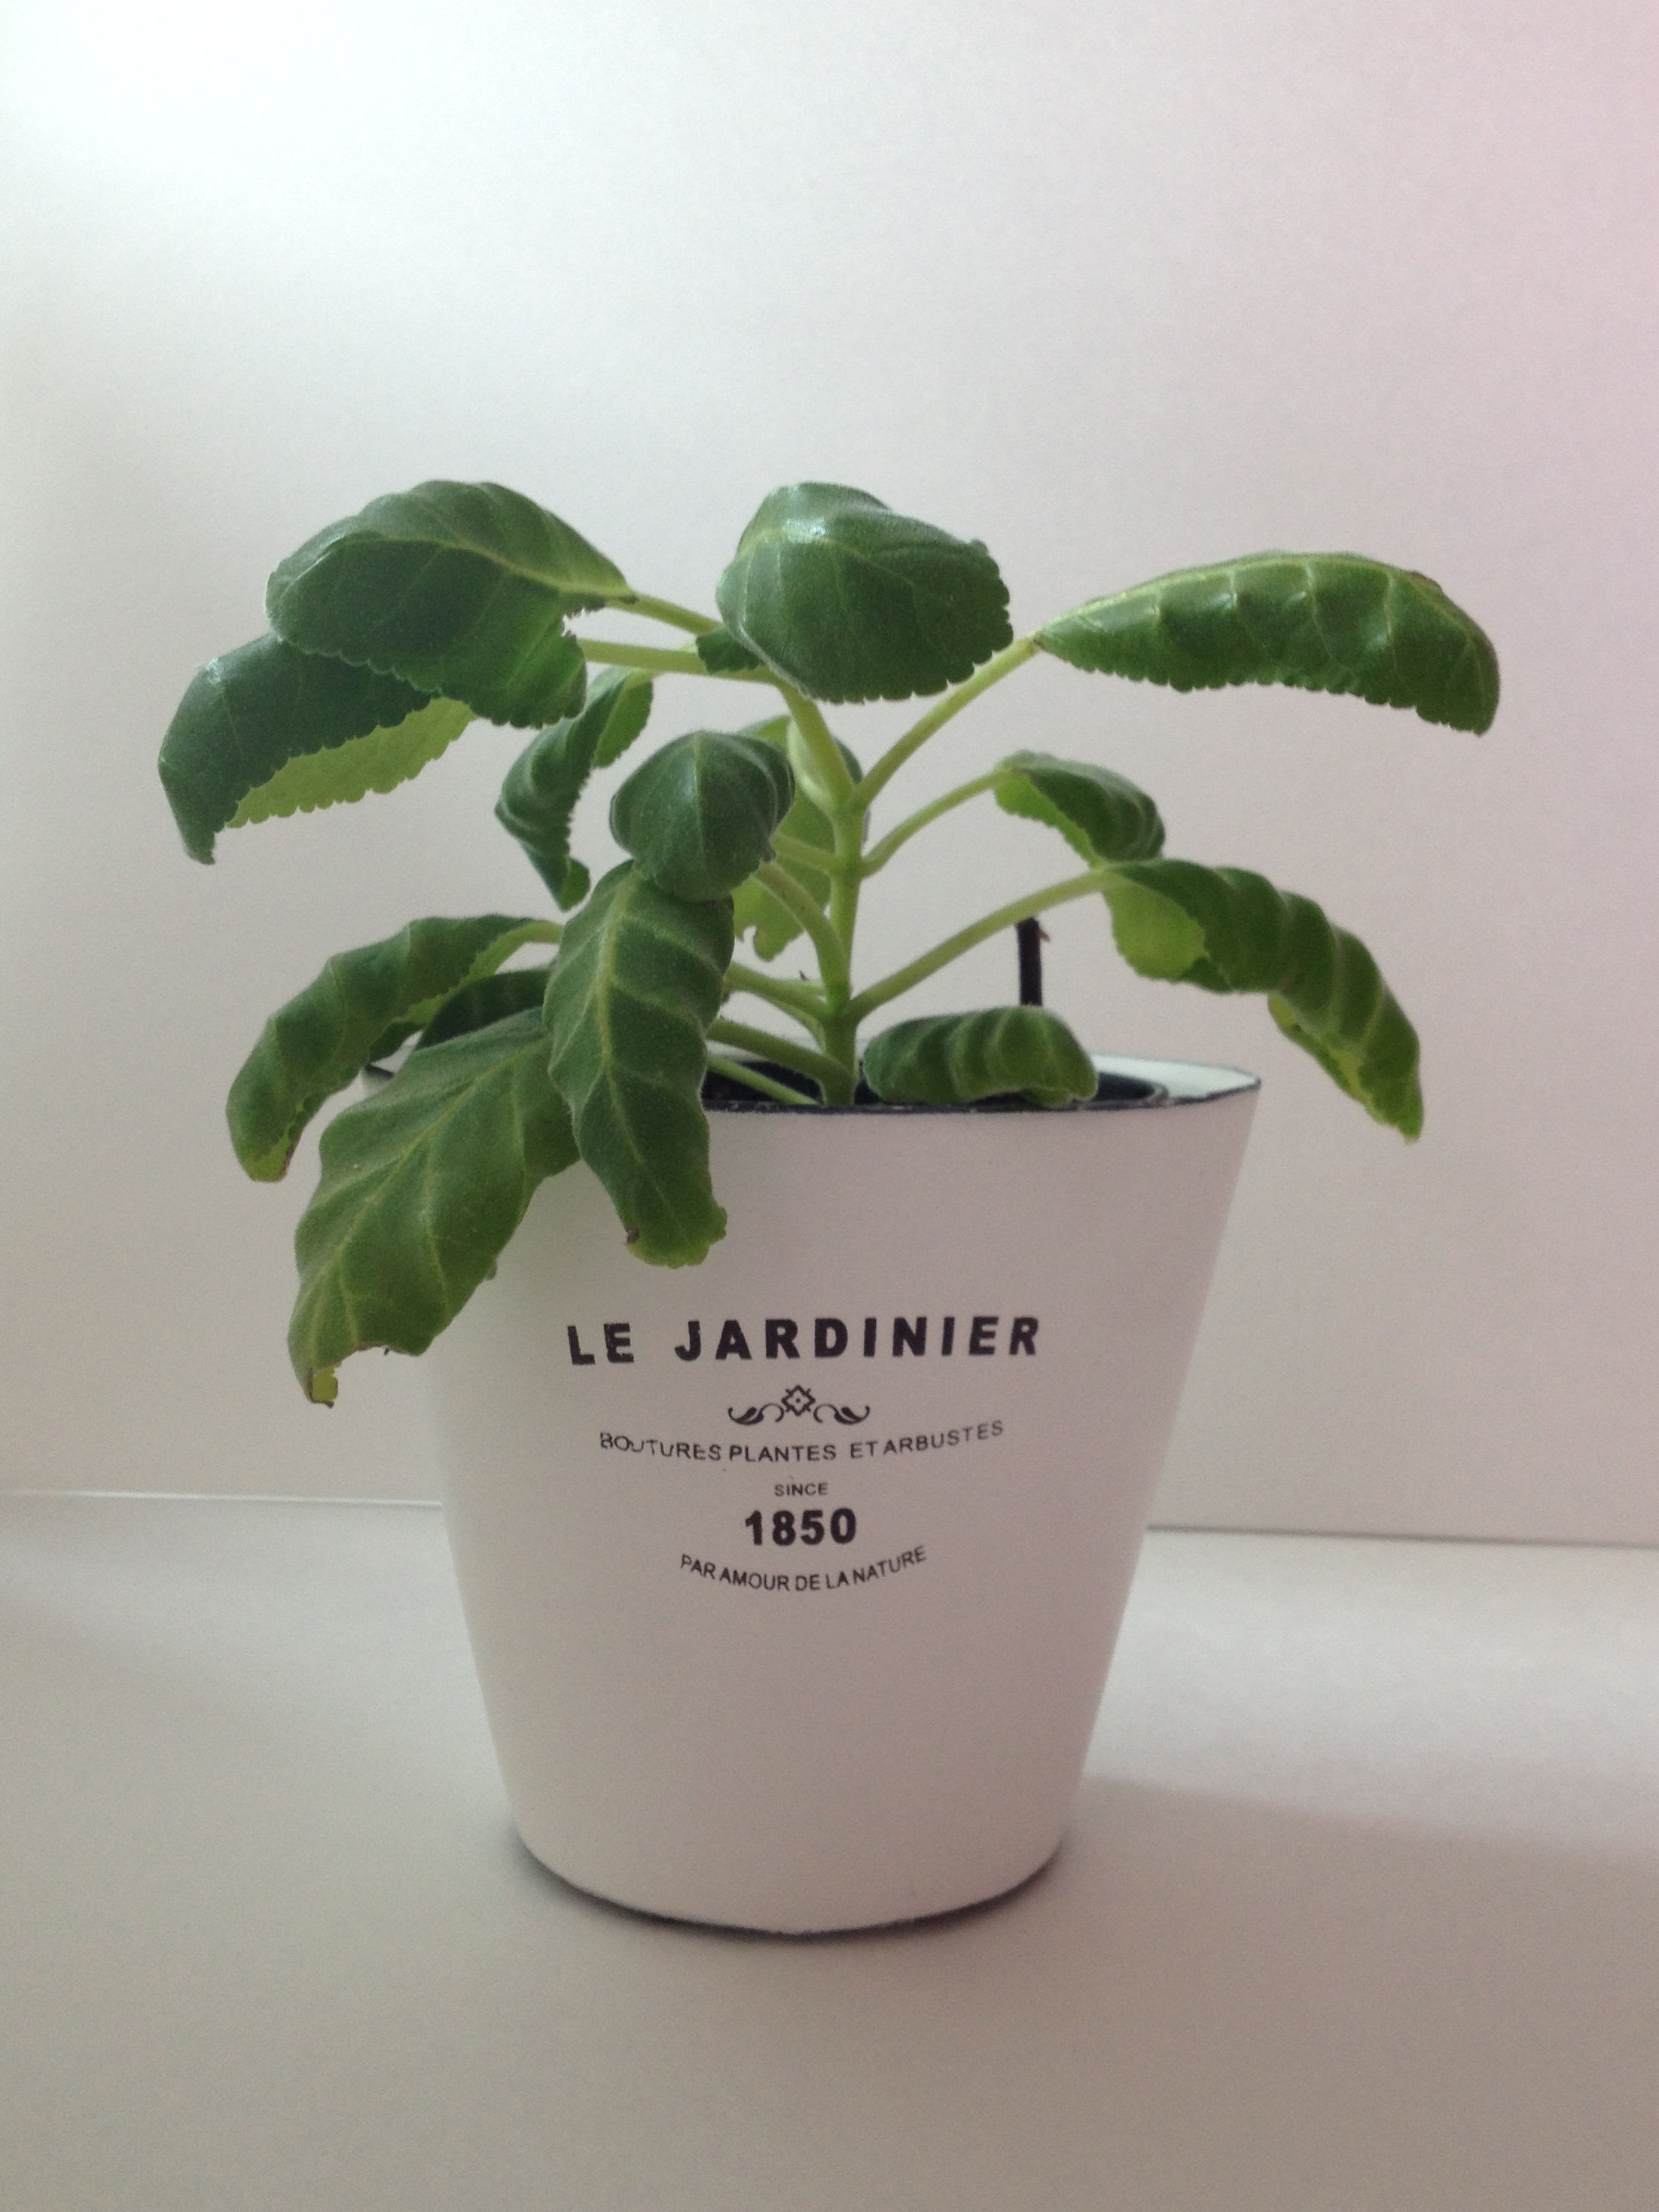 Garden urban barn plant pots white cabana What are miniature plants grown in pots called